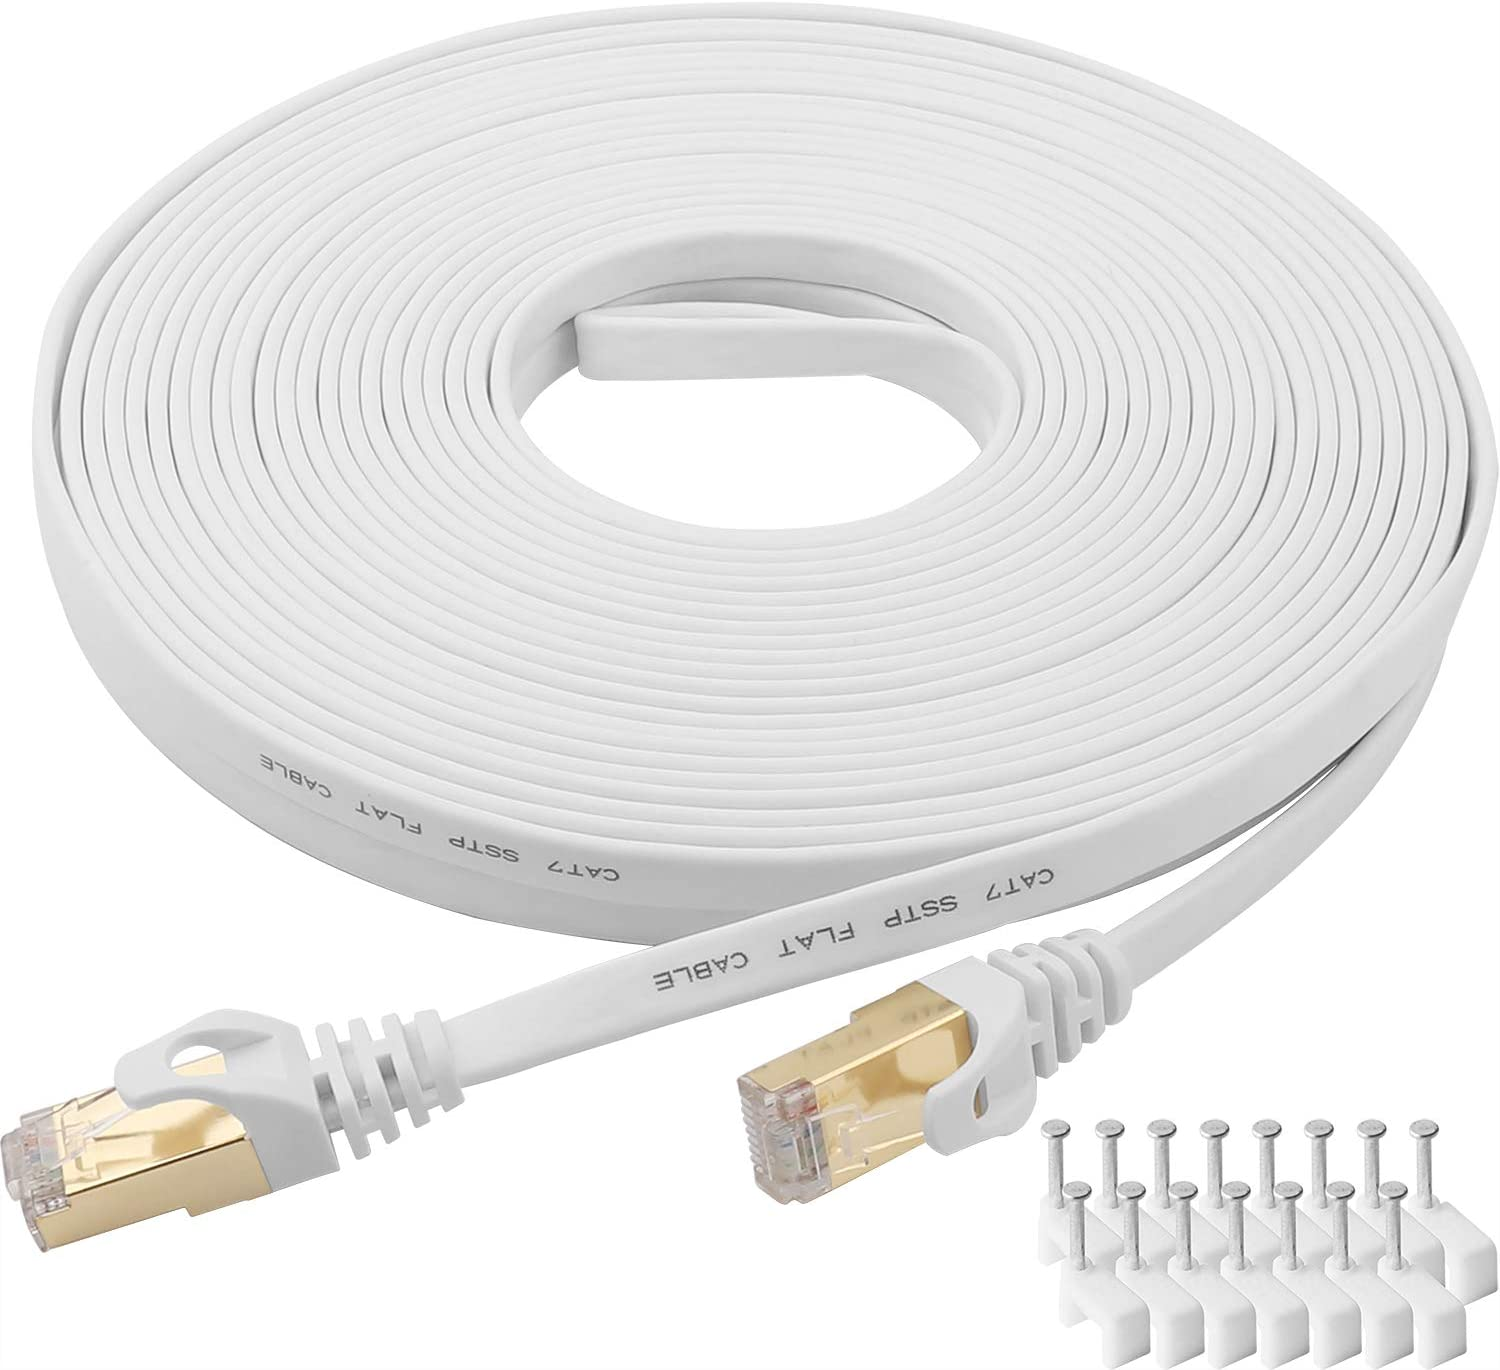 CAT 7 Ethernet Cable 25 Ft White Flat Gigabit High Speed Gigabit Shielded RJ45 LAN Cable: Computers & Accessories